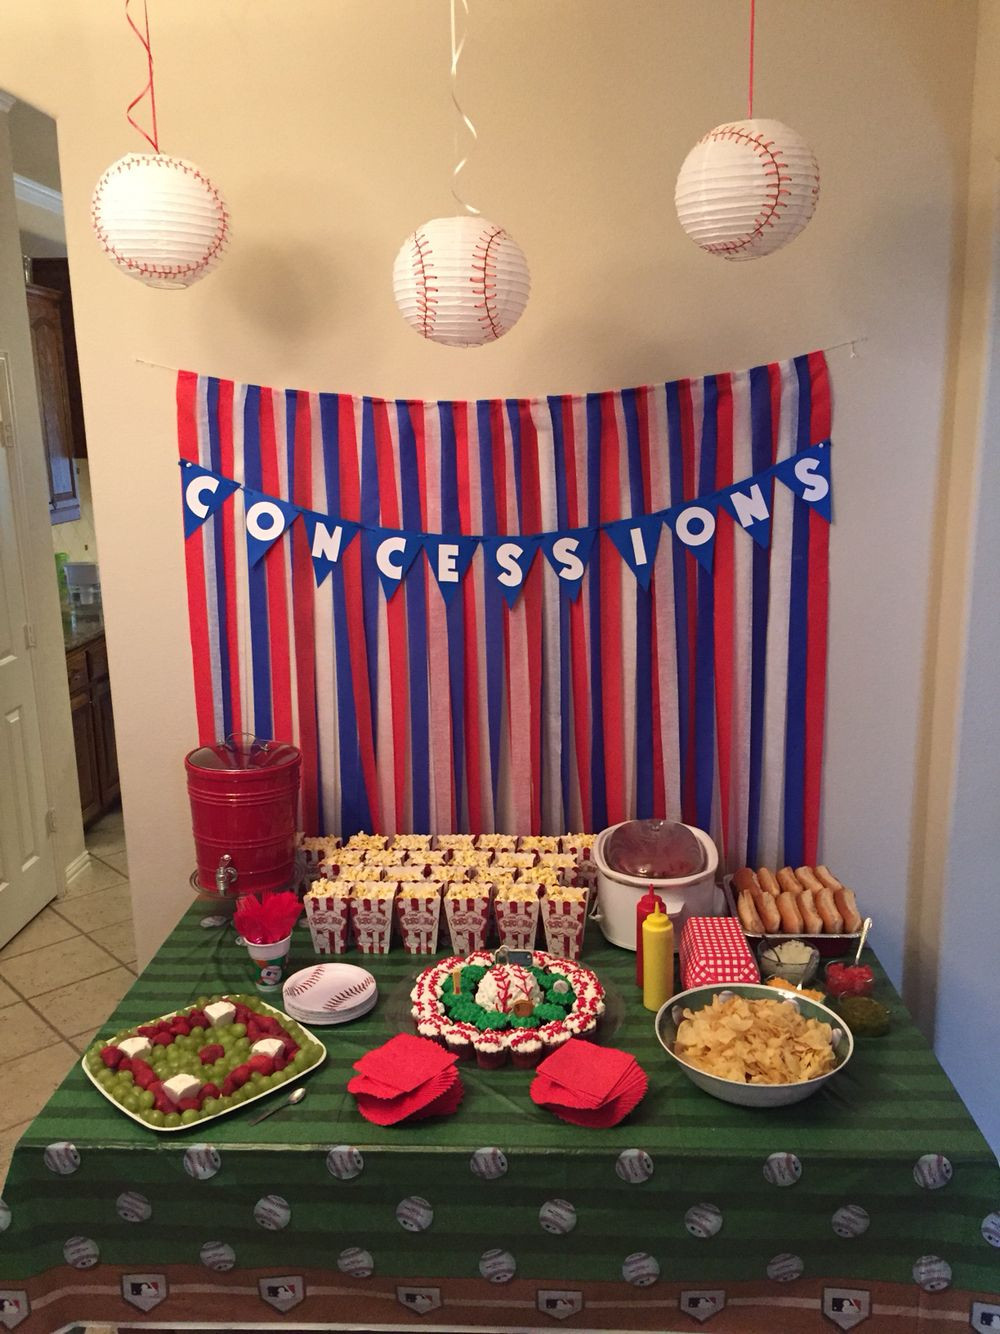 Best ideas about Baseball Themed Birthday Party . Save or Pin Baseball themed Birthday party Now.